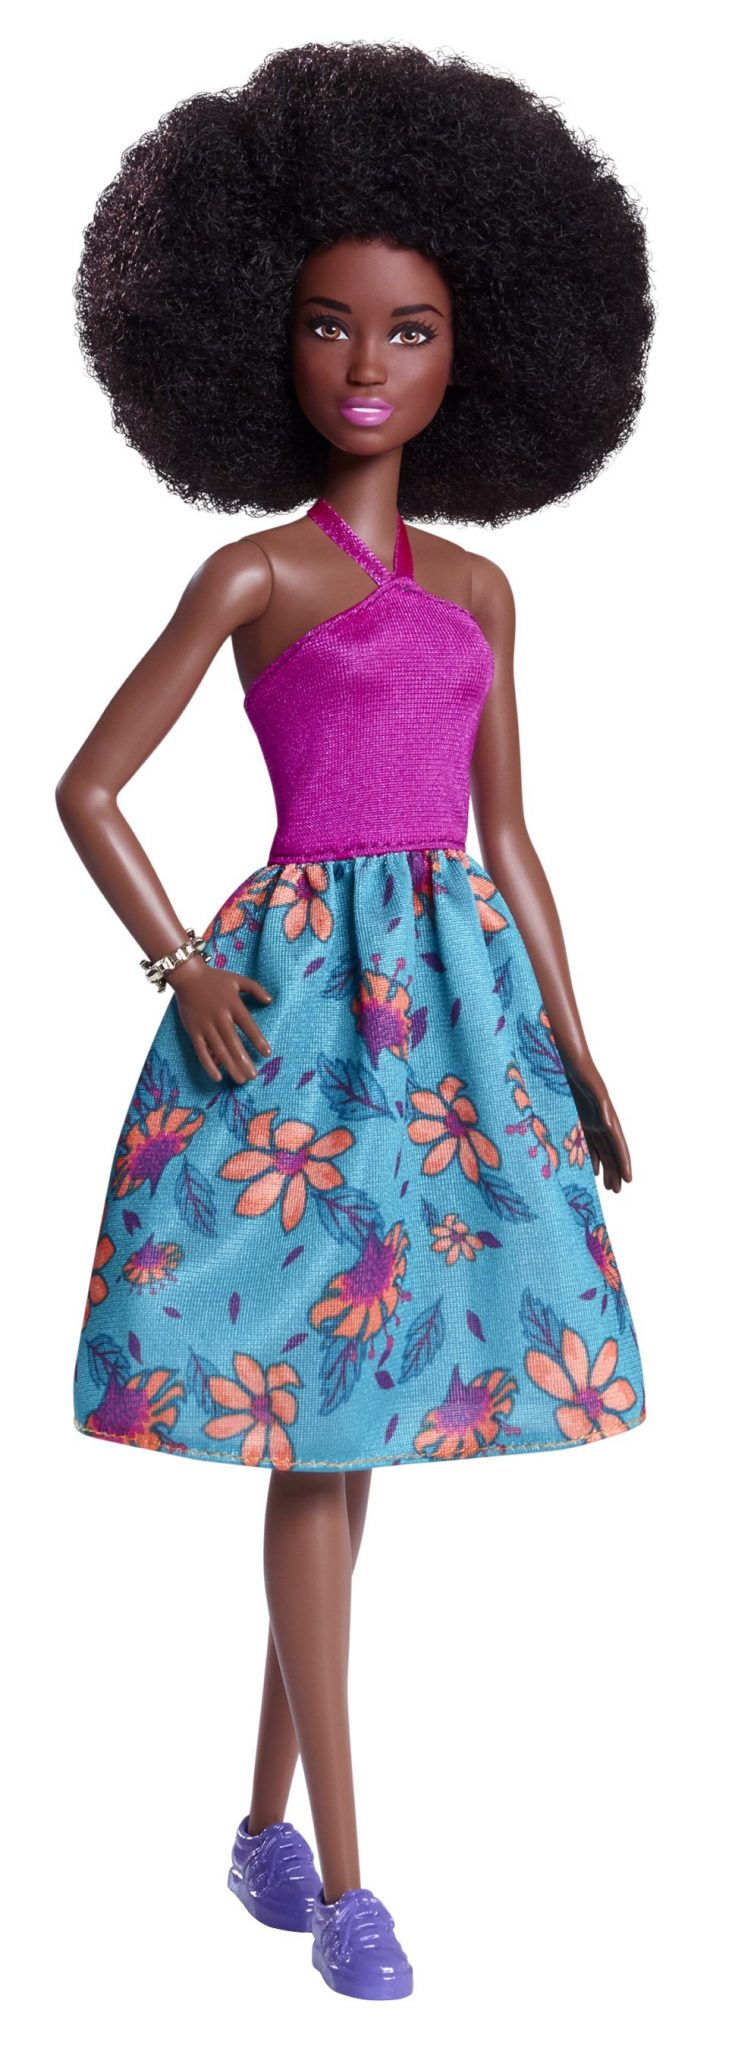 Ken gets the 'brother' makeover: Barbie® Brand shows commitment to diversity